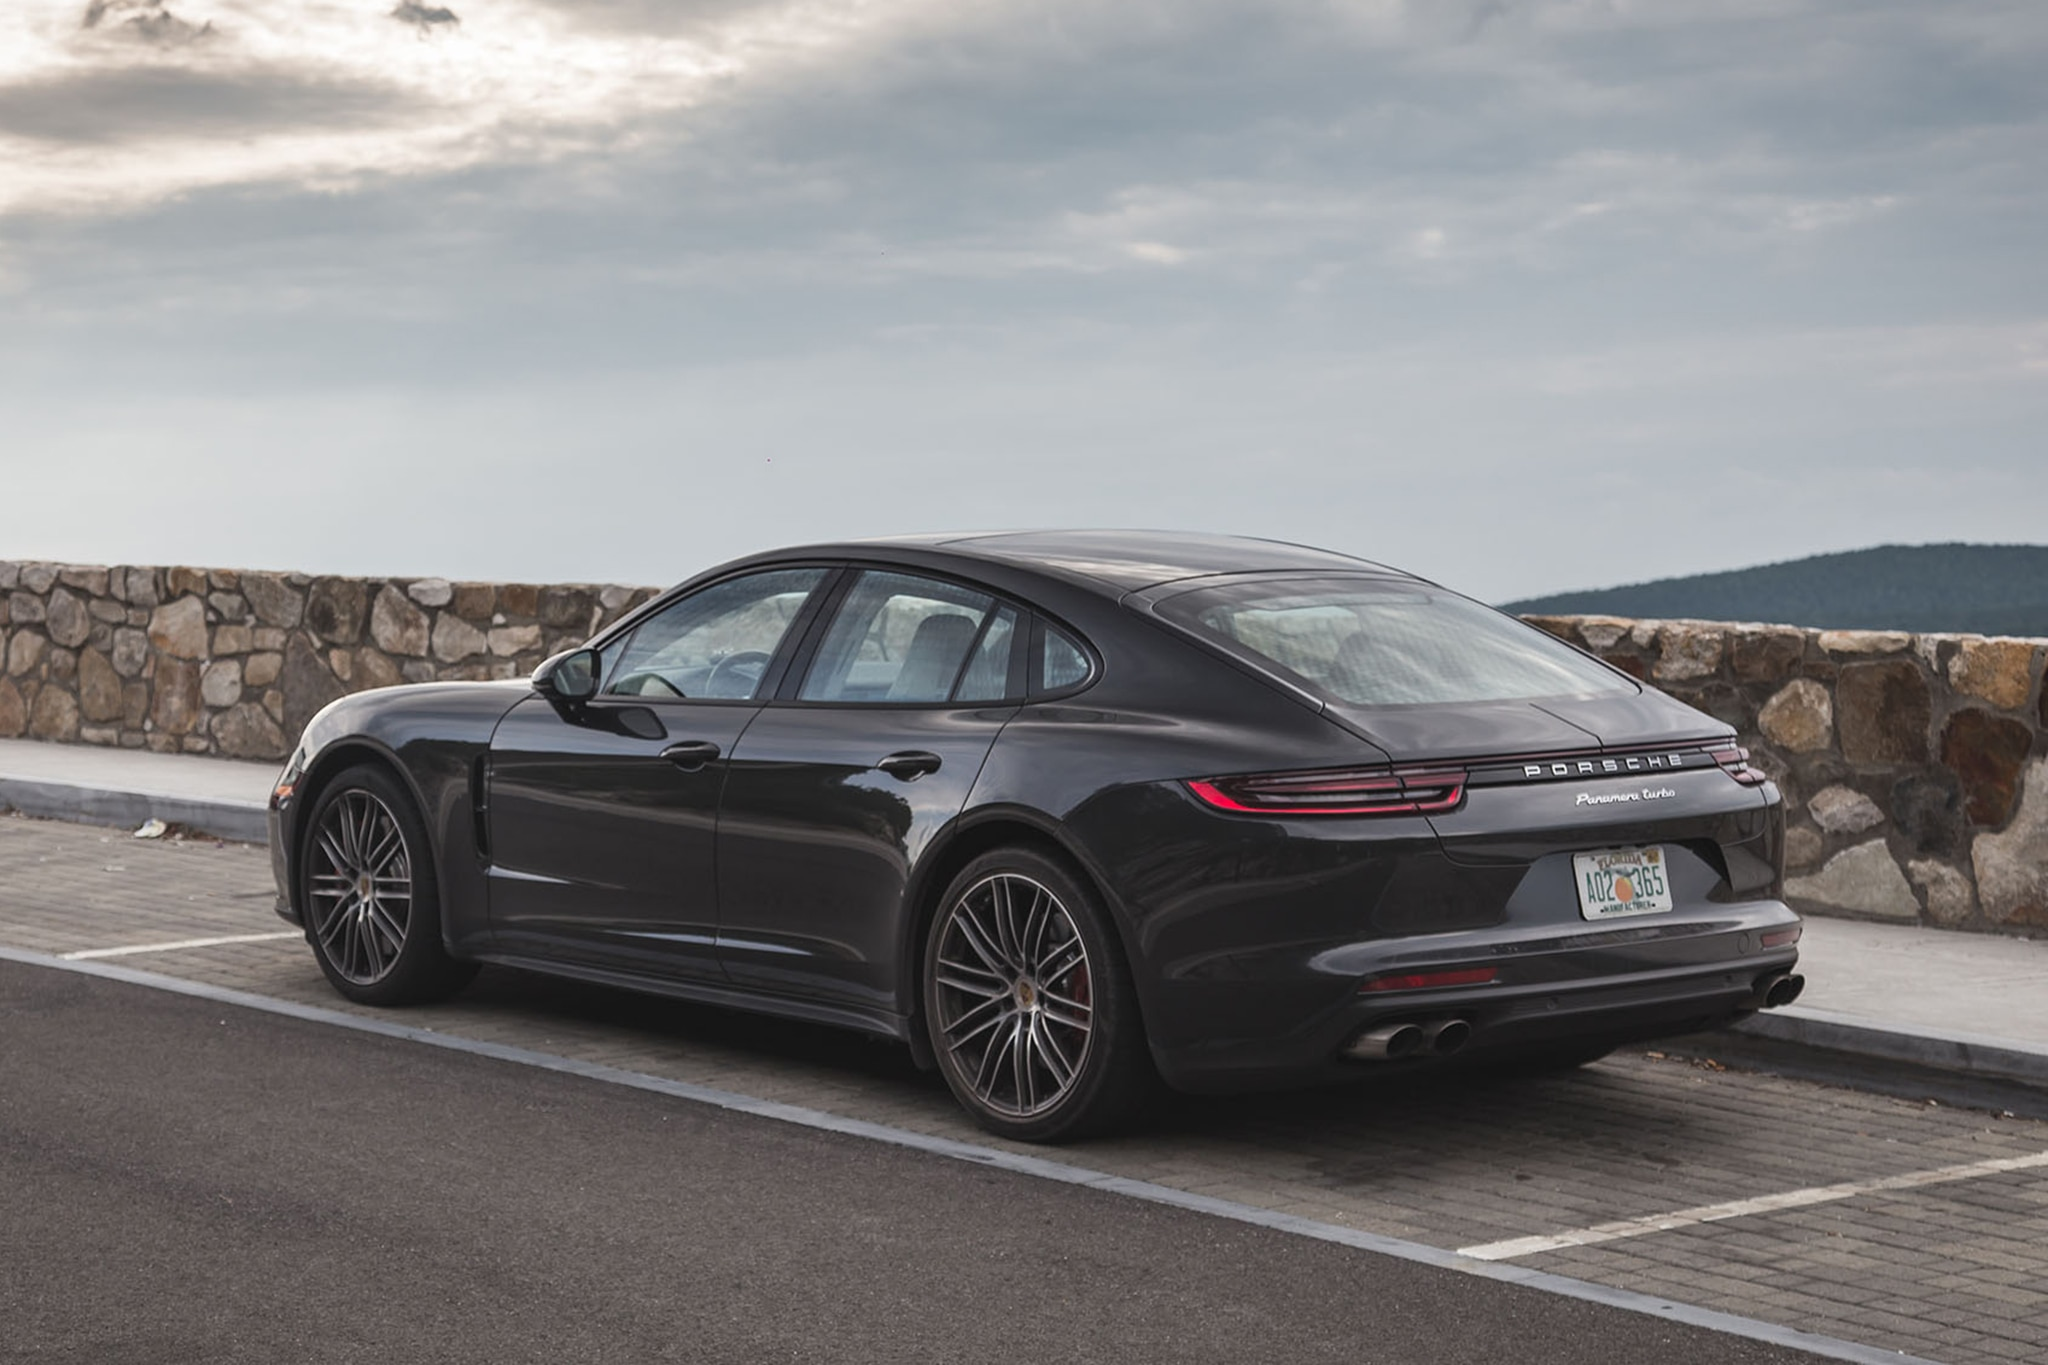 2017 Porsche Panamera Turbo Rear Three Quarter 02